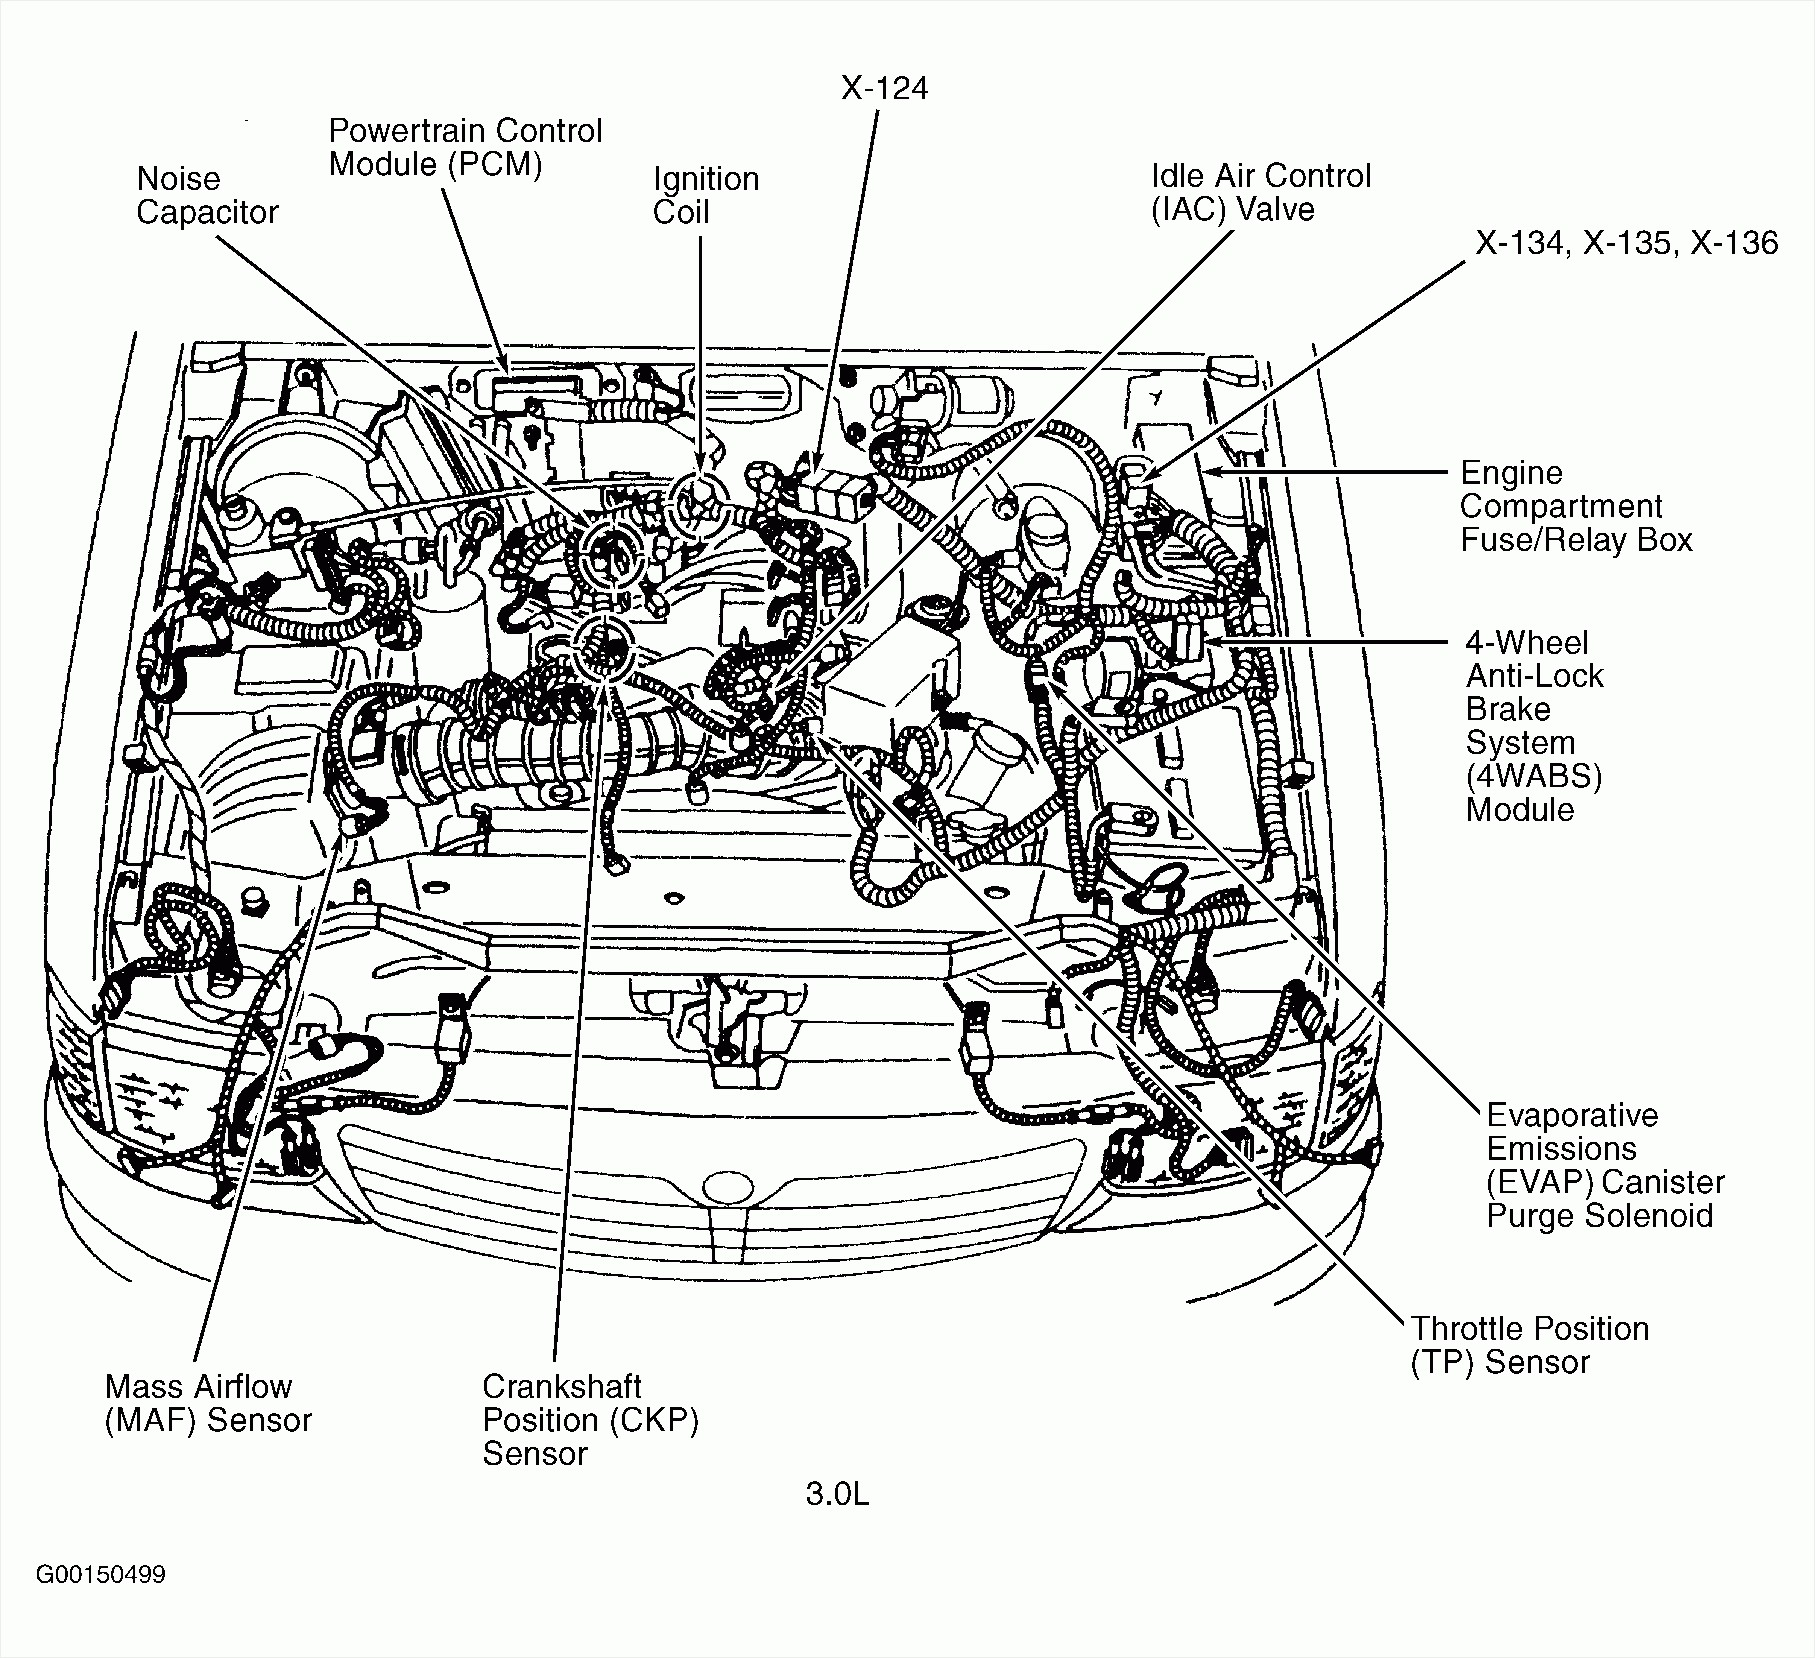 hight resolution of 2010 volkswagen routan engine diagram wiring diagram name2010 volkswagen routan engine diagram wiring diagram list 2010